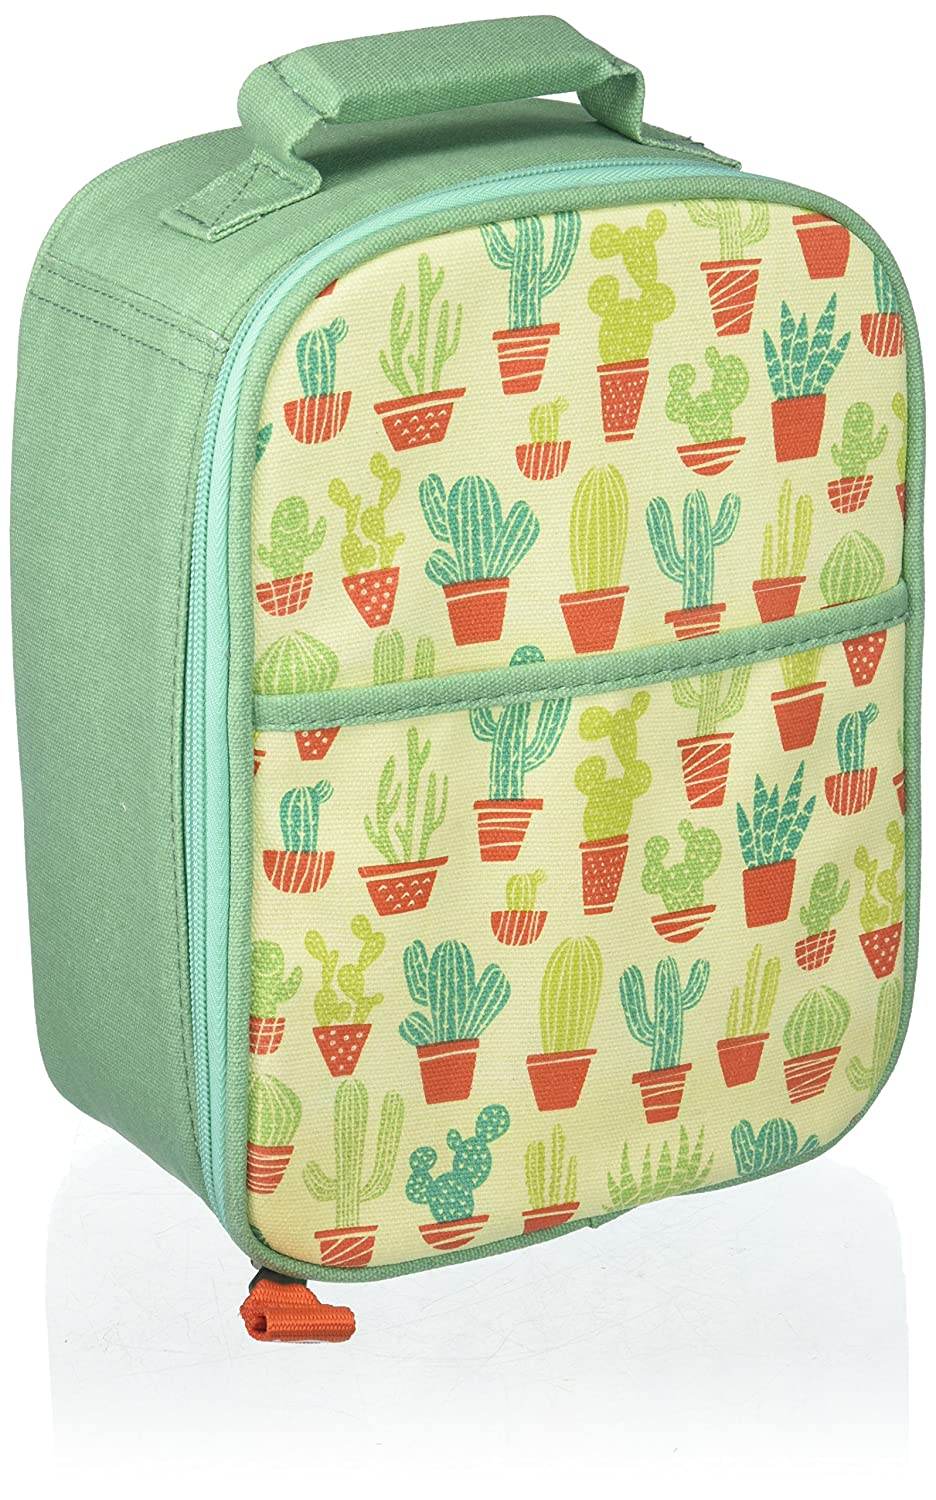 SugarBooger Zippee Lunch Tote, Happy Cactus ORE Originals A1268